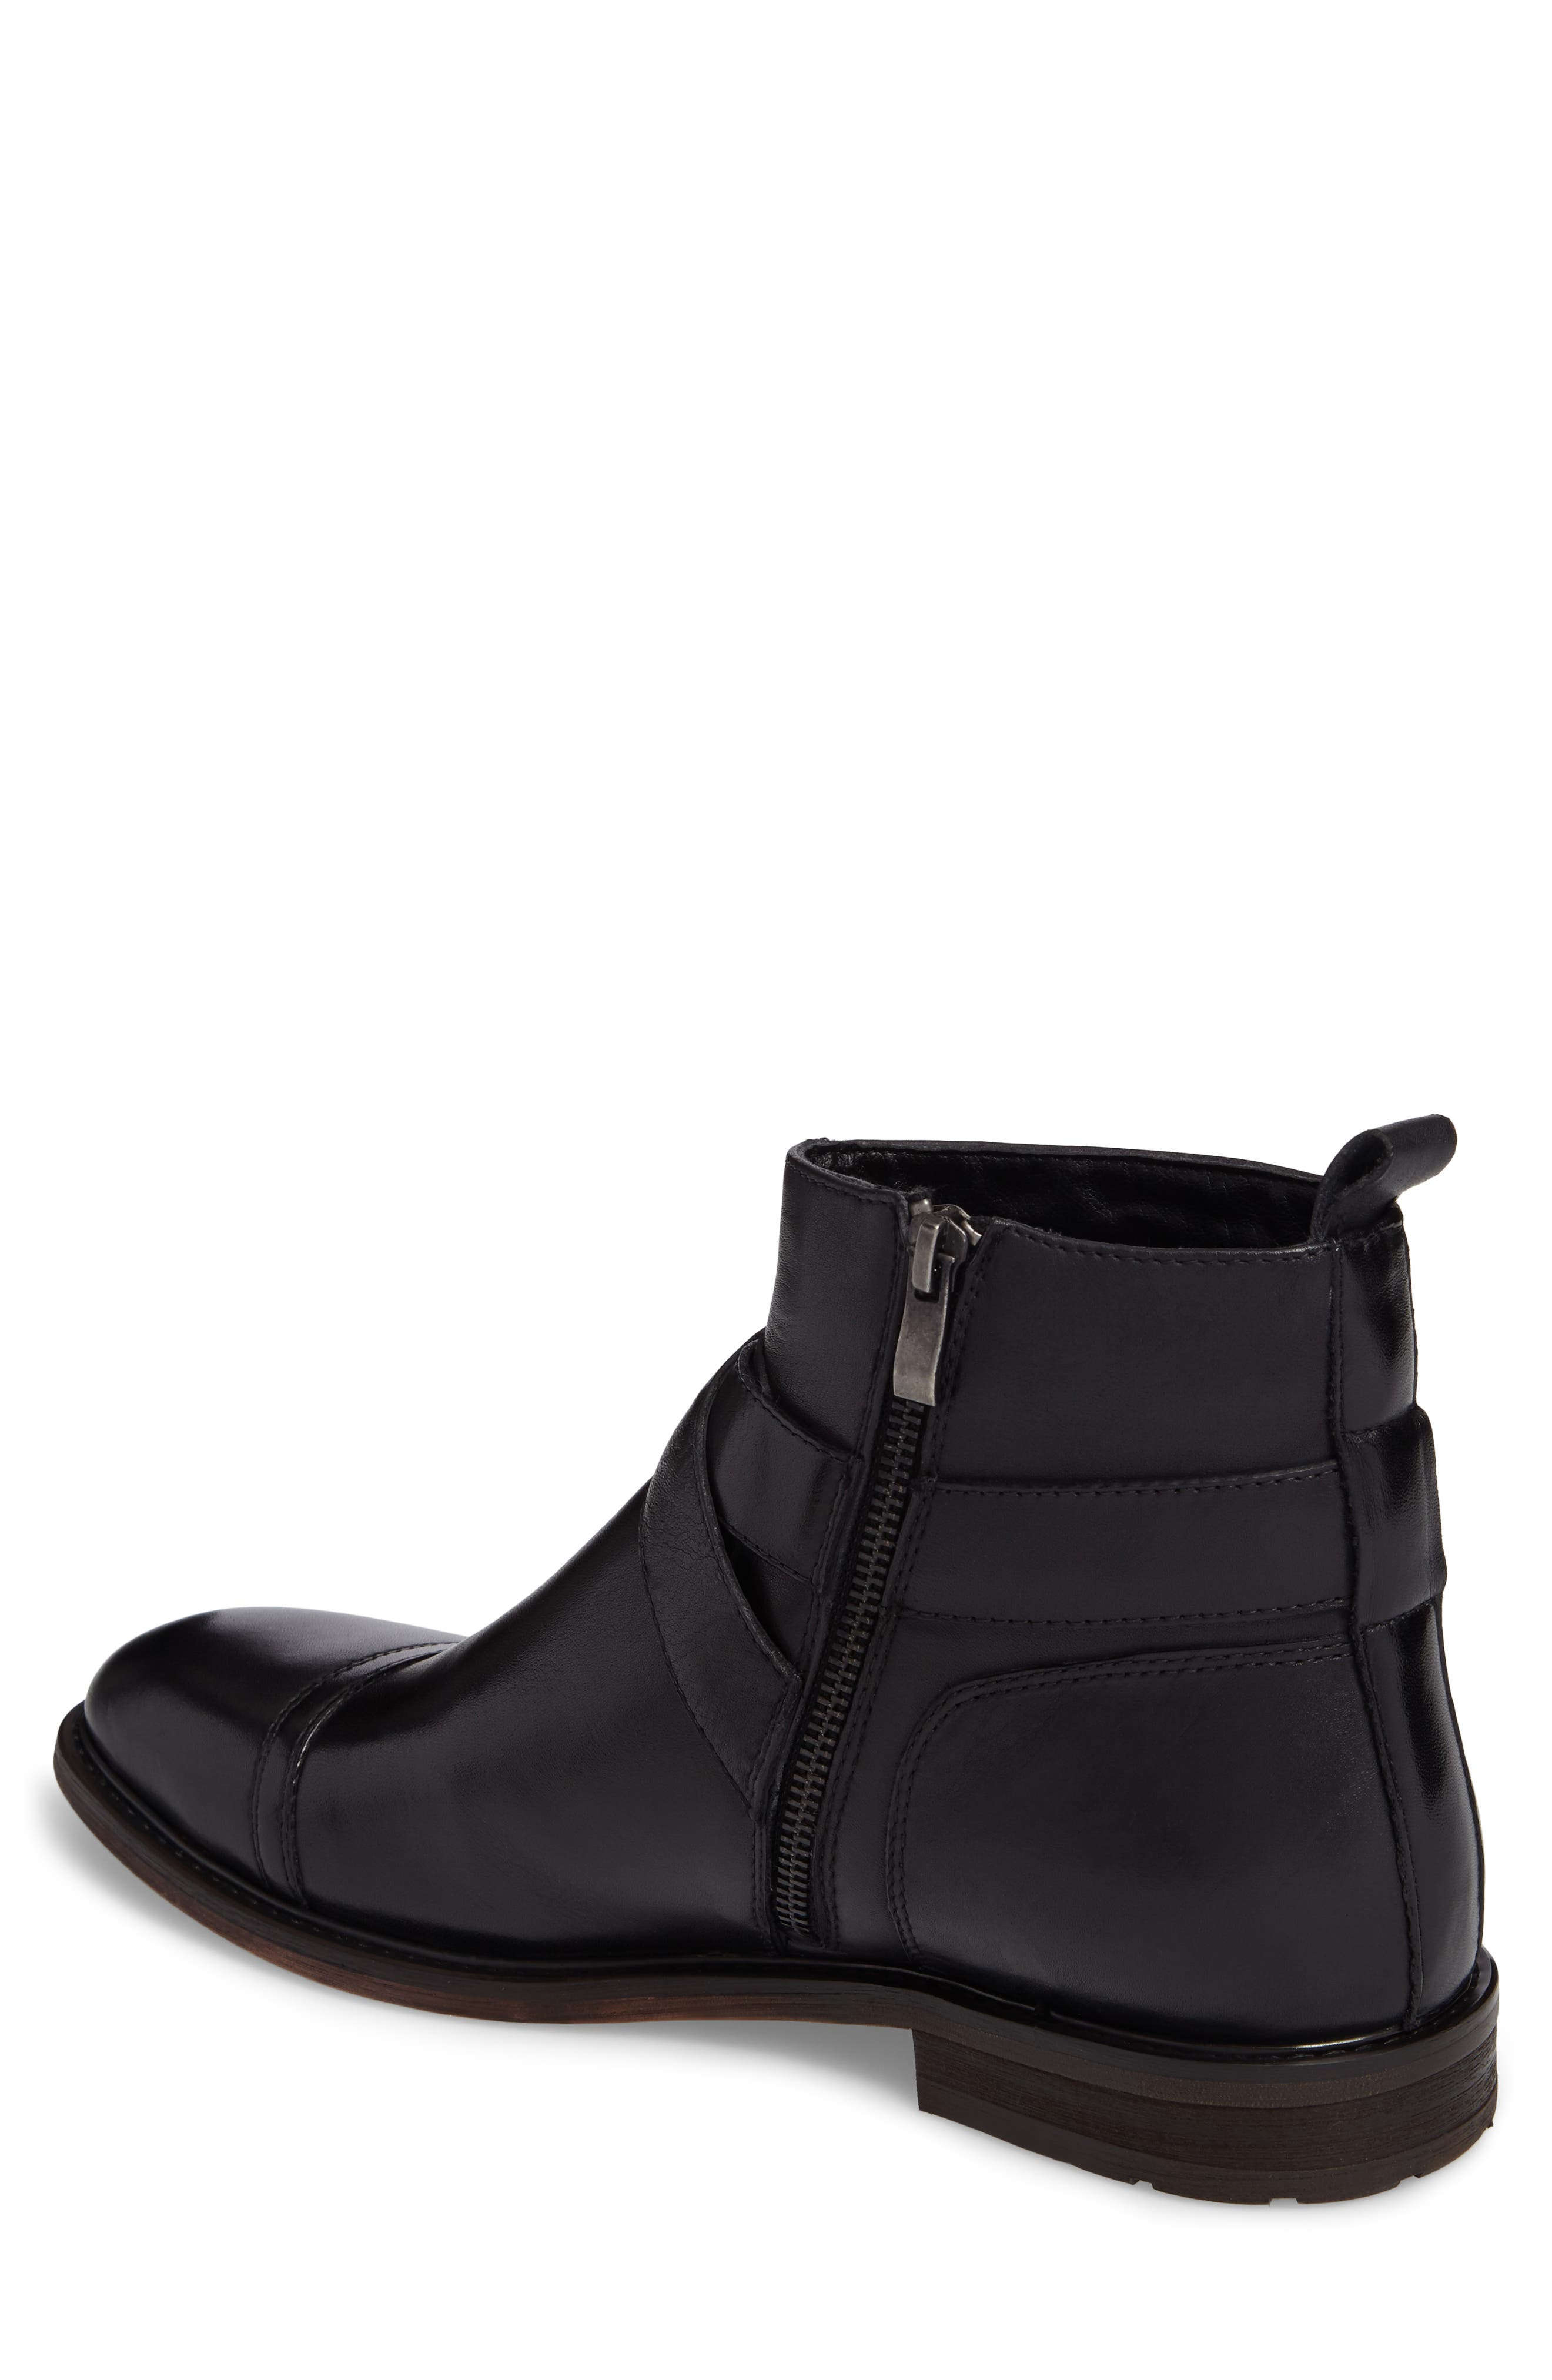 Edmond Zip Boot,                             Alternate thumbnail 2, color,                             Black Leather